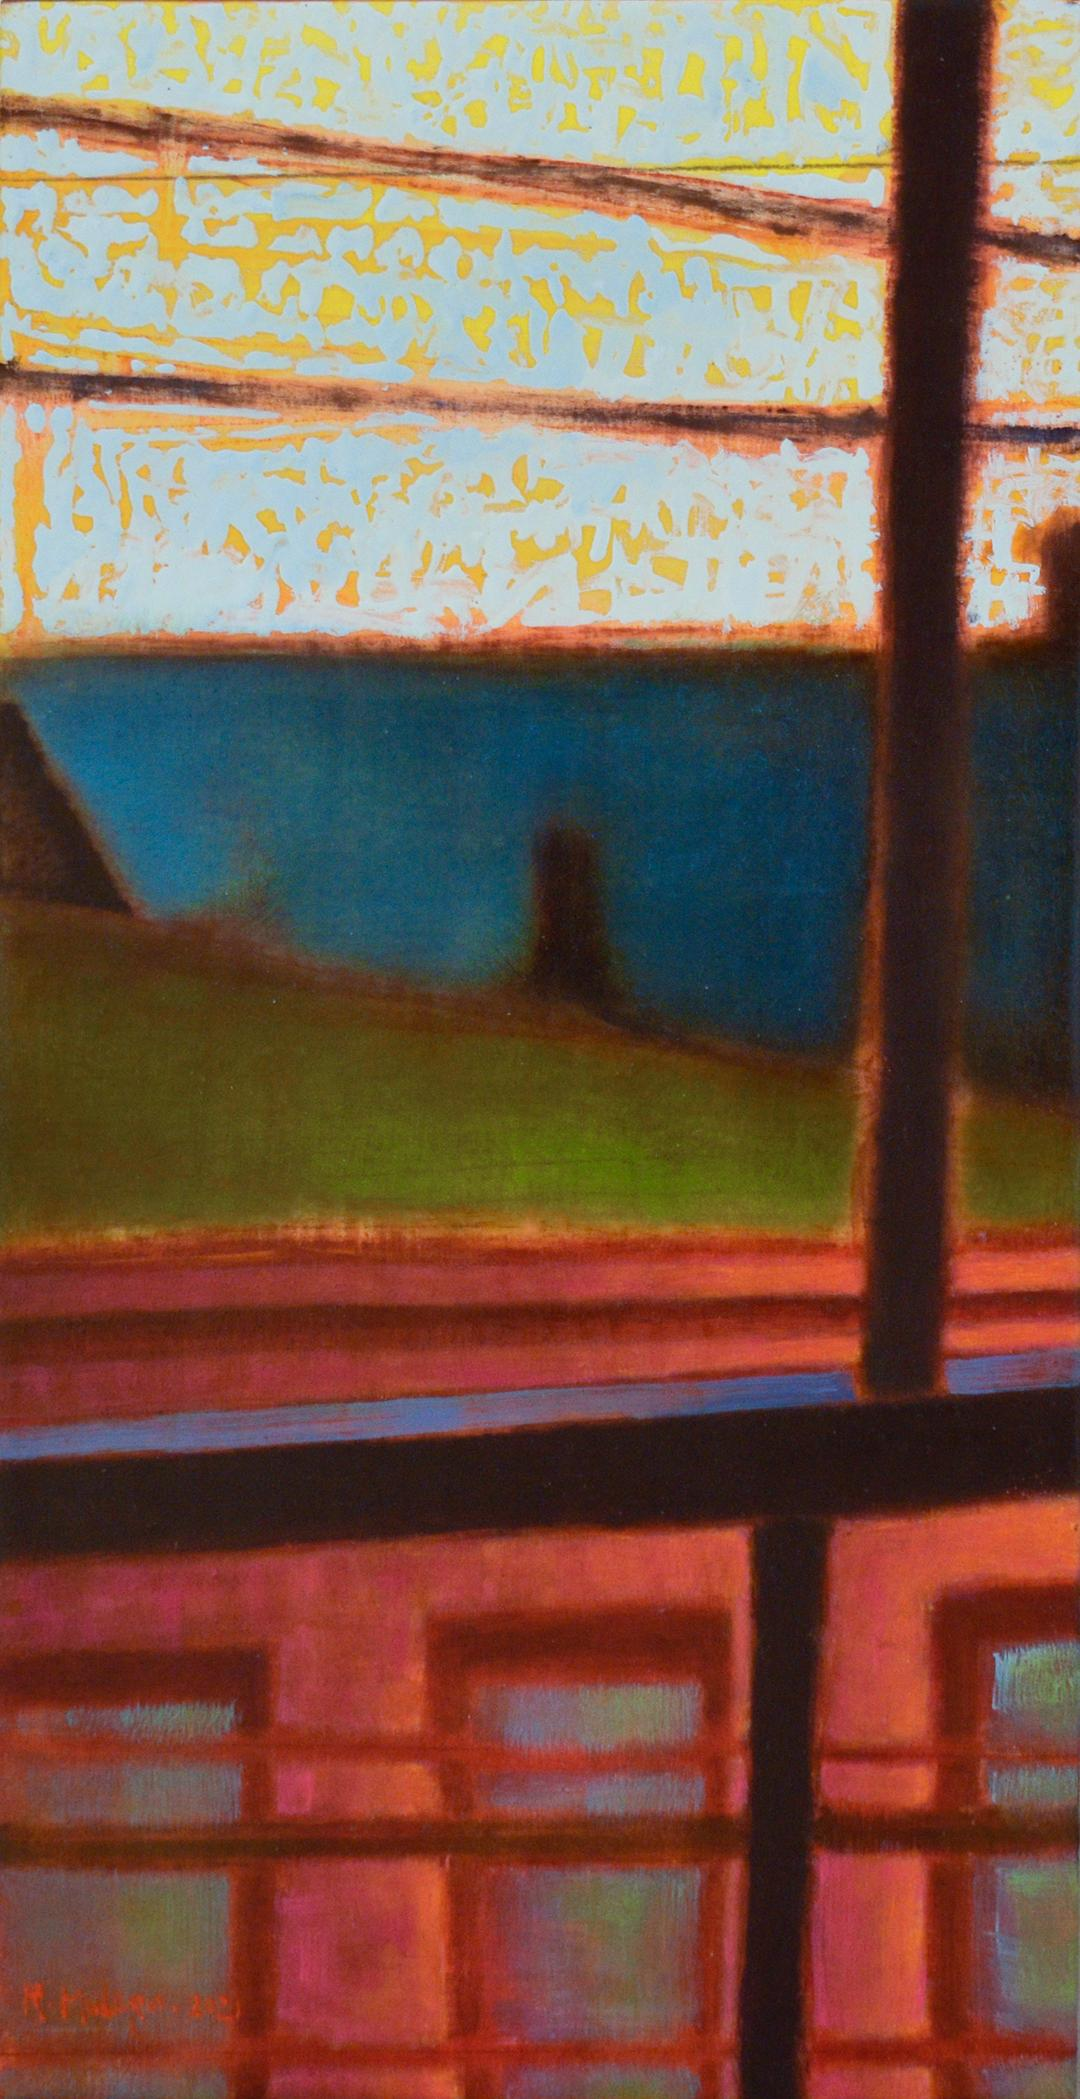 Rooftops Power Lines, Five & Diamond: Abstract Cityscape Painting of Hudson NY